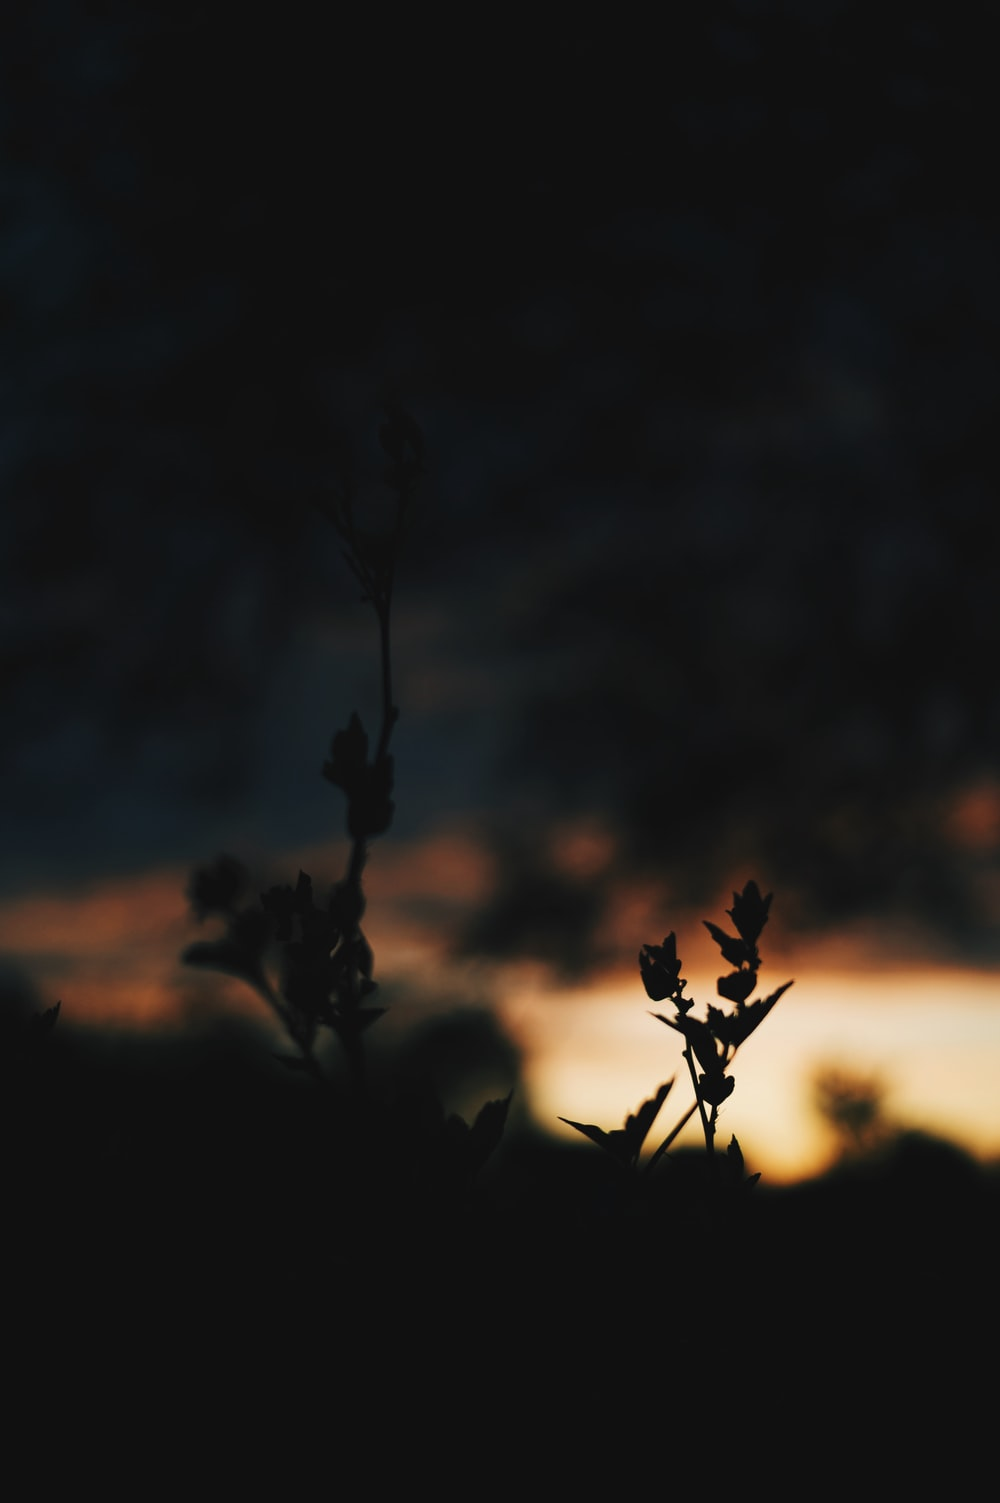 silhouetto of plants